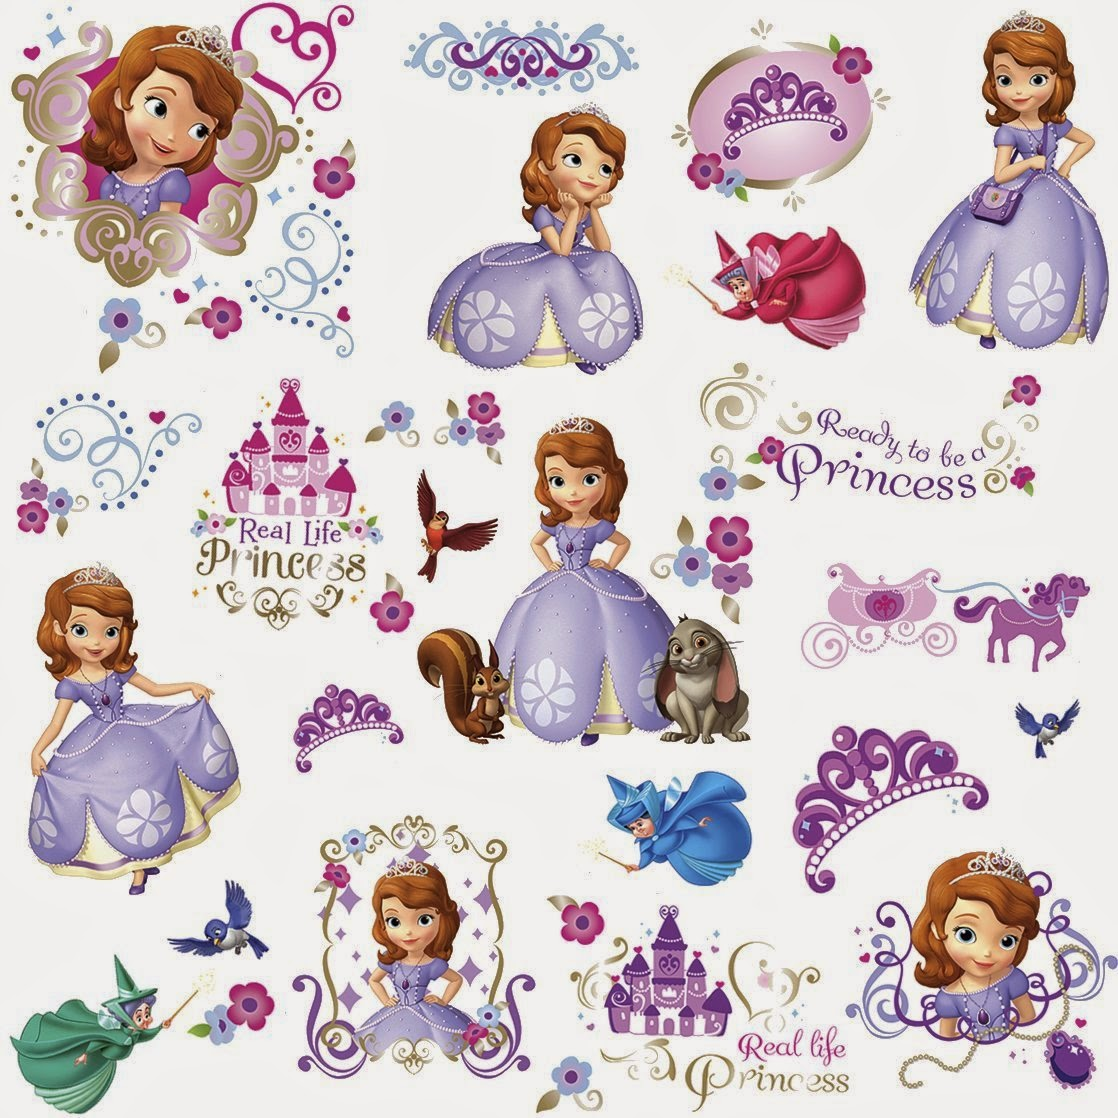 Mums and tots shopping paradise april 2014 disney princess sofia the first peel and stick wall decals 2990 amipublicfo Images